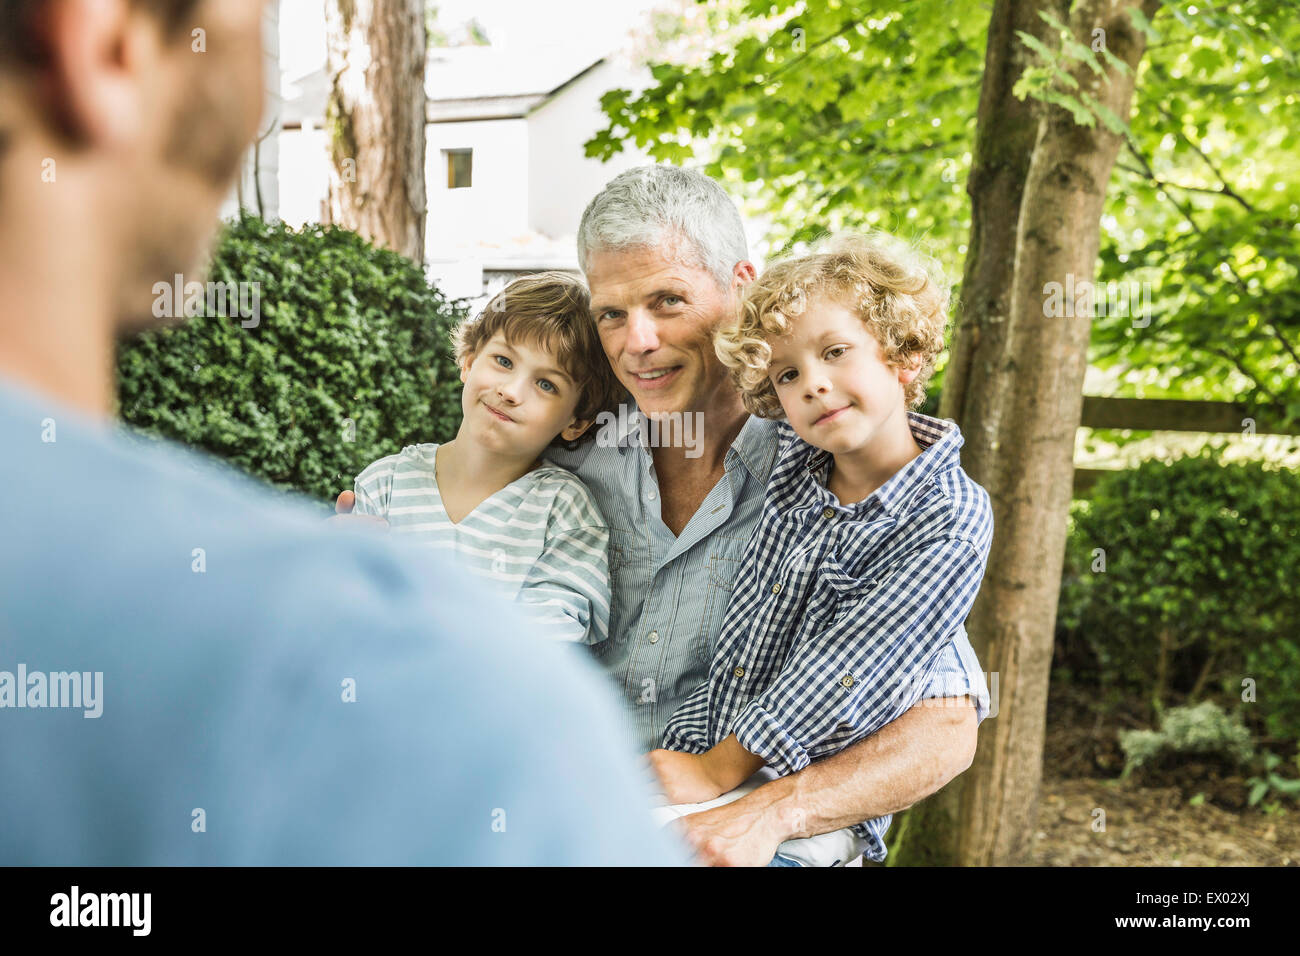 Mid adult man with father and sons in garden - Stock Image